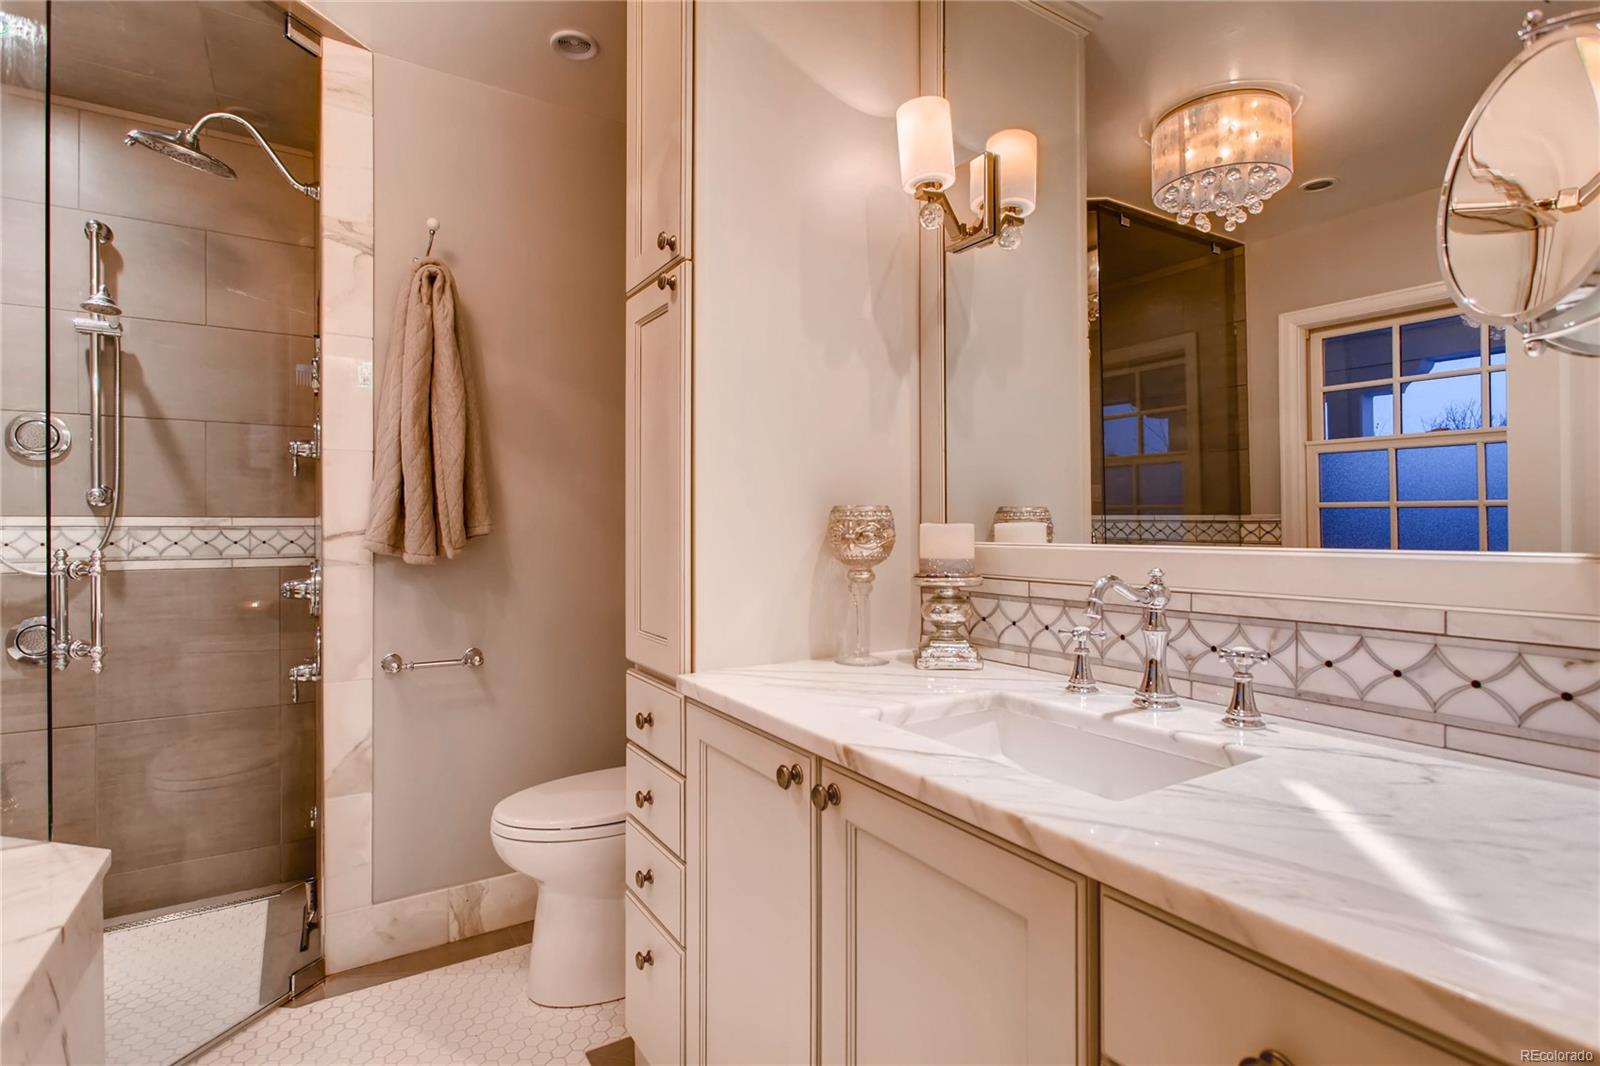 Master Bathroom with marble counters and accents, air bubble tub and steam/rain